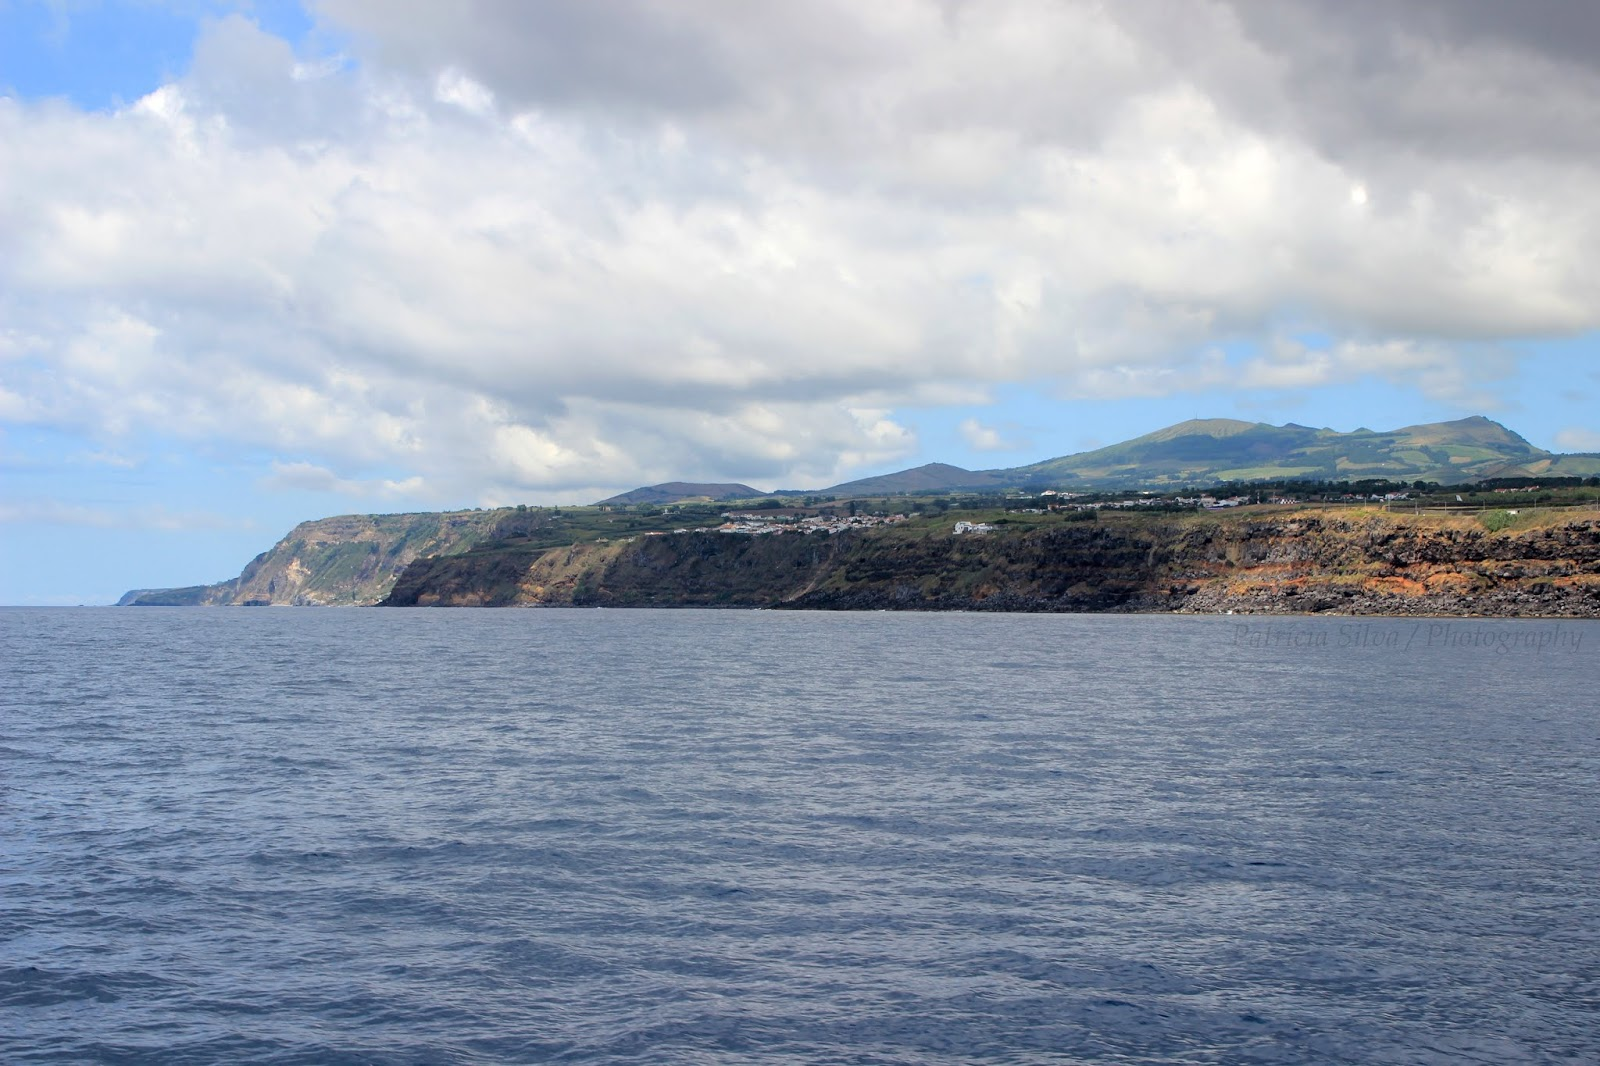 São Miguel seen from the boat